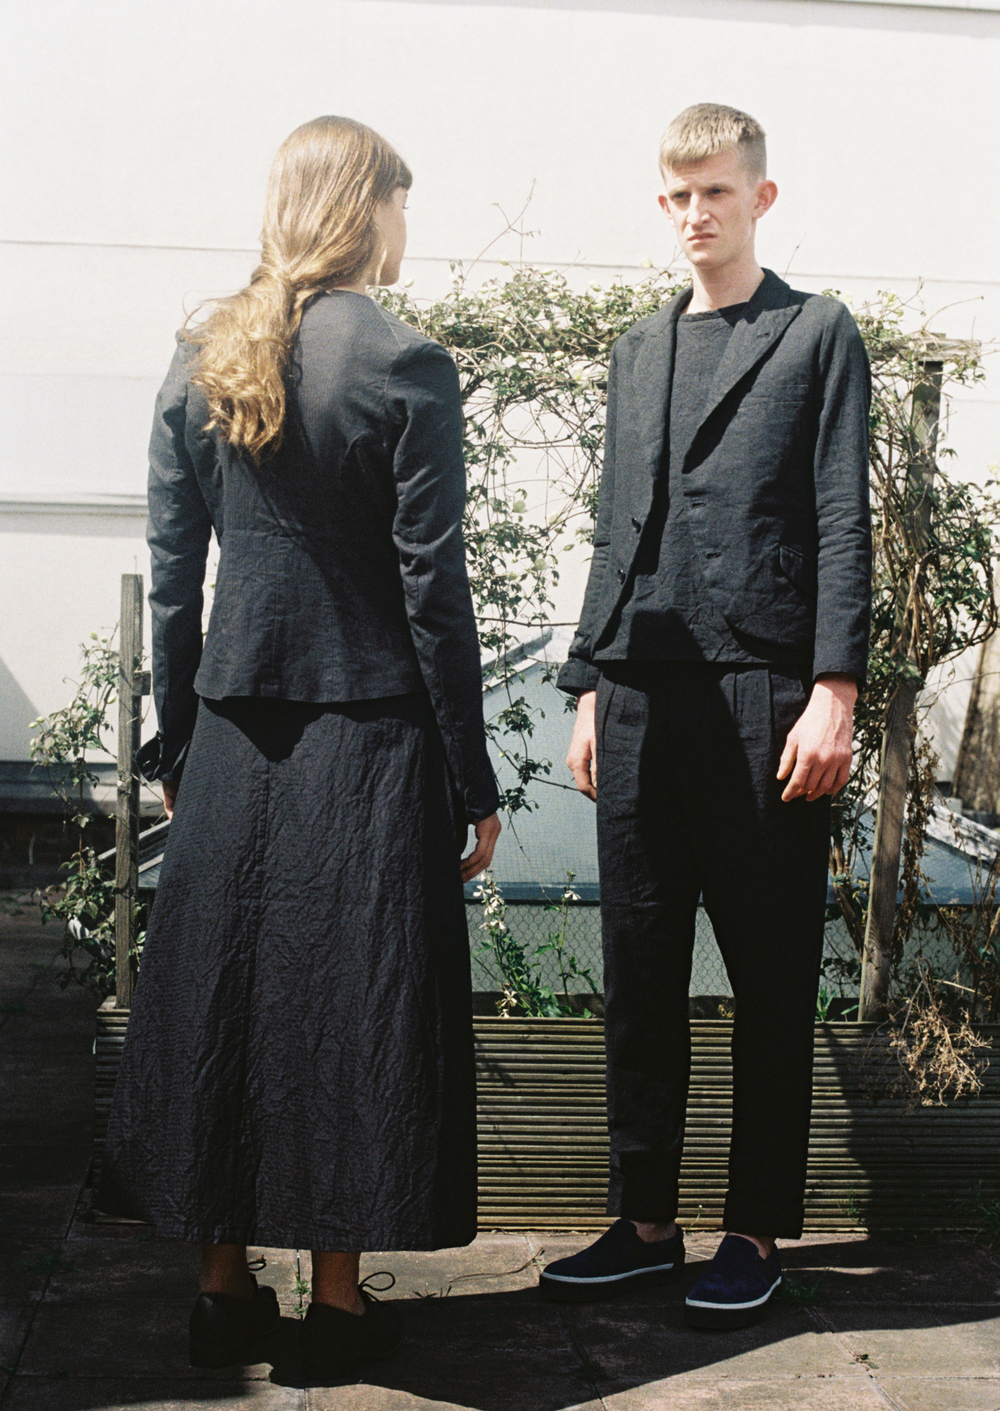 Two timeless suits by Geoffrey b. Small photographed by Ryan Skelton. Models:  Jack Appleyard & Pauline de Bionay